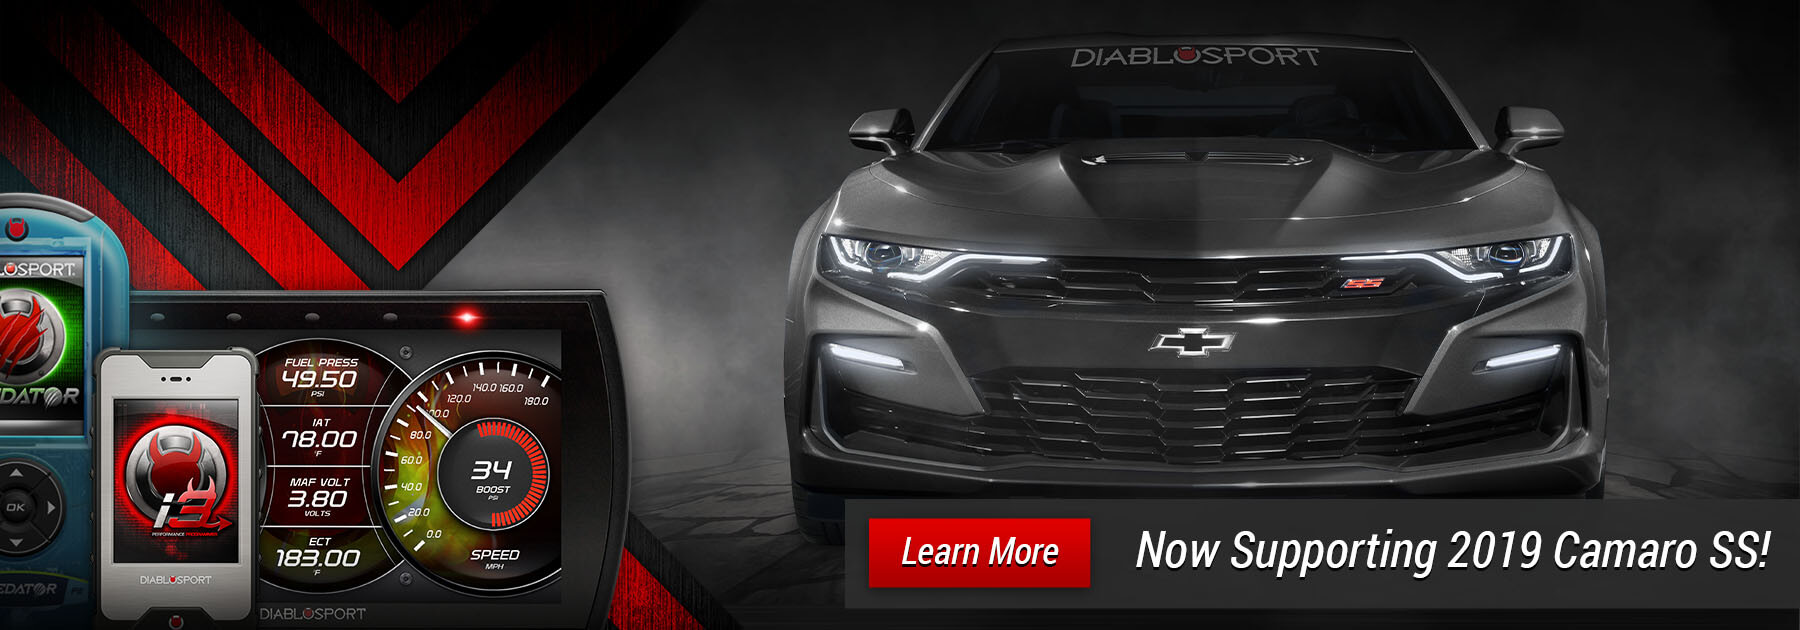 DiabloSport Performance Tuning Support for 2019 Camaro SS